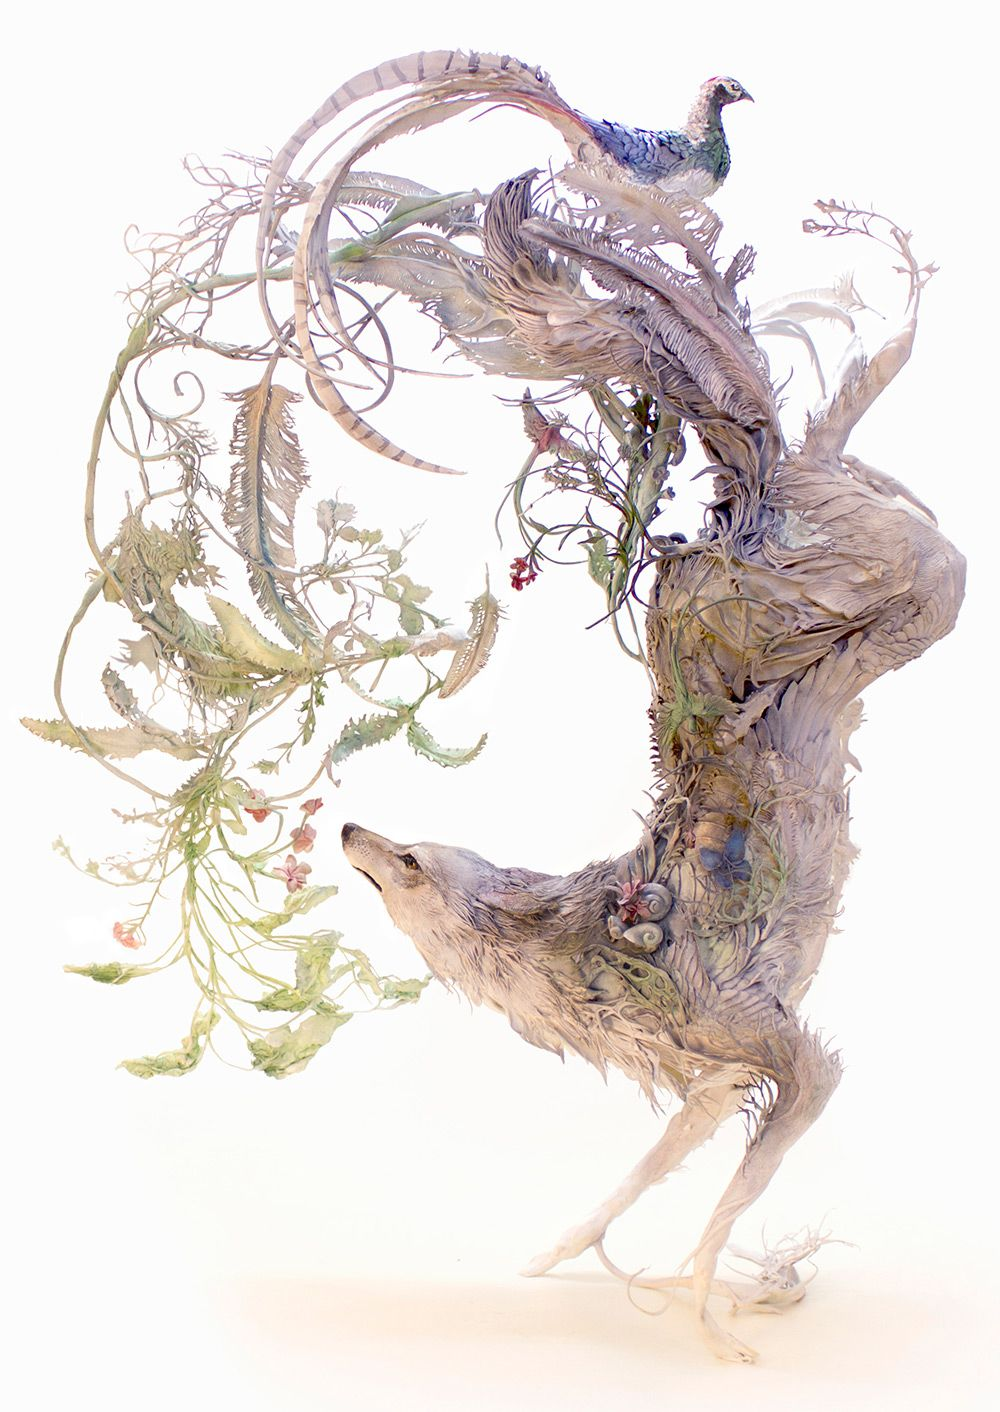 Lush And Surreal Sculptures Of Symbiotic Animals By Ellen Jewett 1